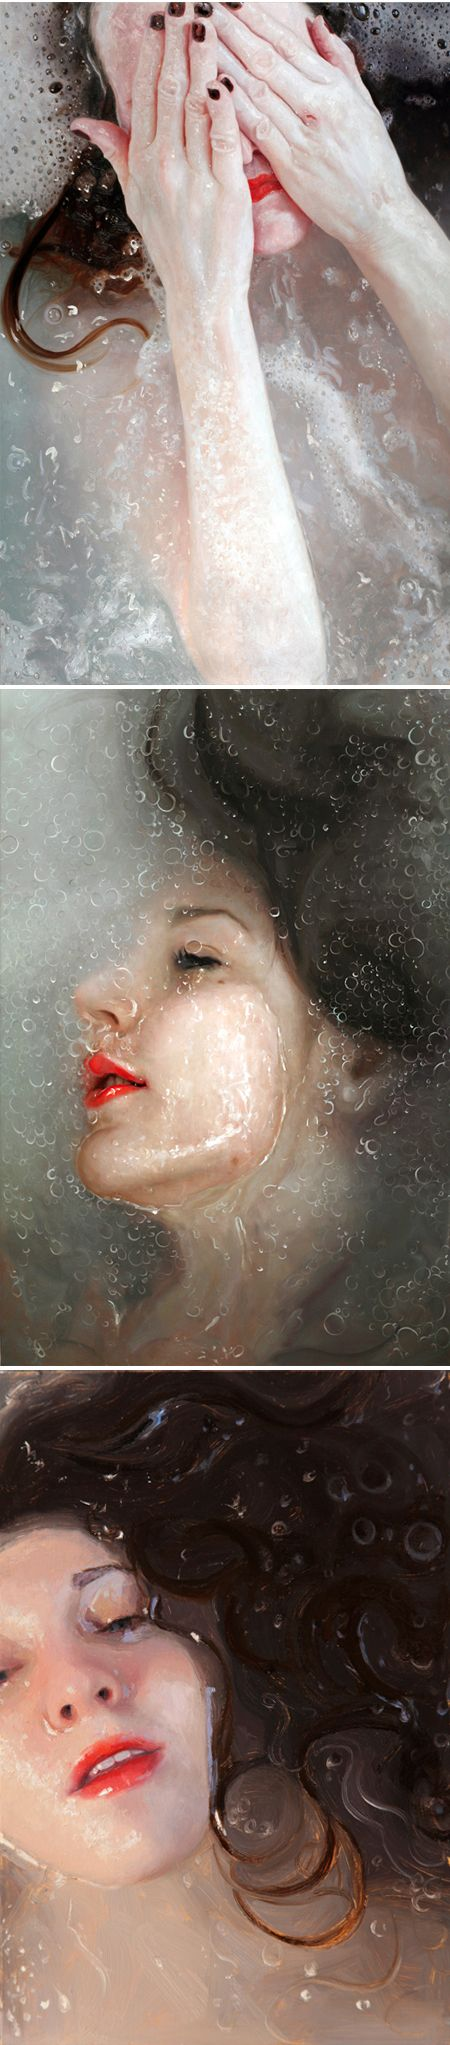 Oil paintings {yes, paintings!} by New York based artist Alyssa Monks – I am in complete awe, I am a little bit scared, and I am kinda in the mood for a bath… while wearing red lipstick. Hm, or perhaps a steamy shower instead: